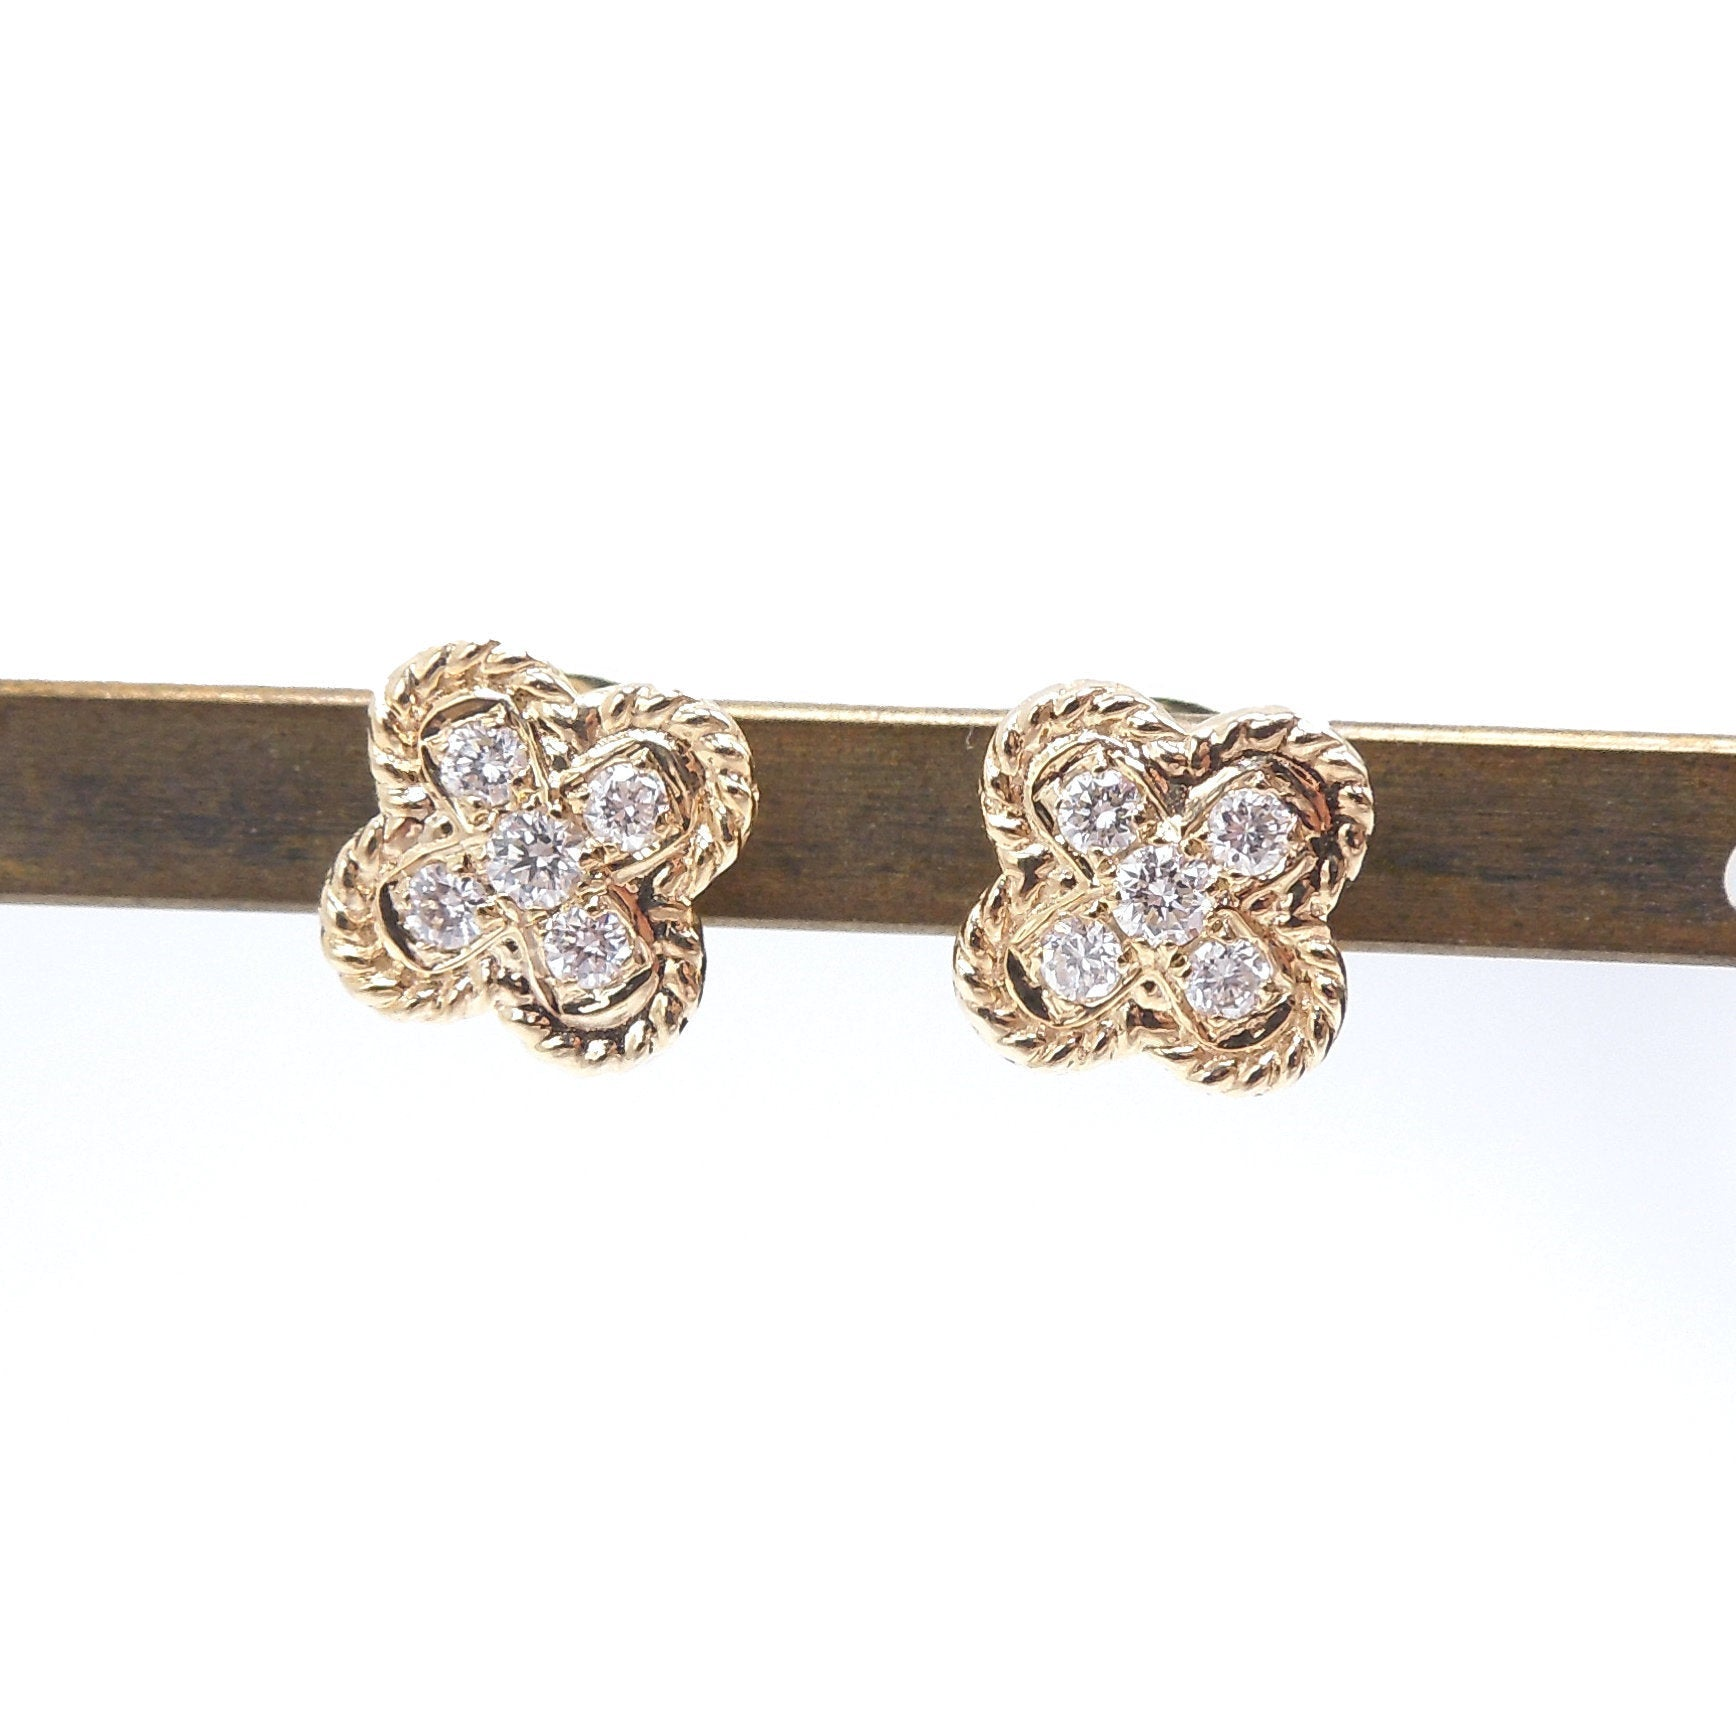 14K Yellow Gold and Diamond Floral Shaped Stud Earrings